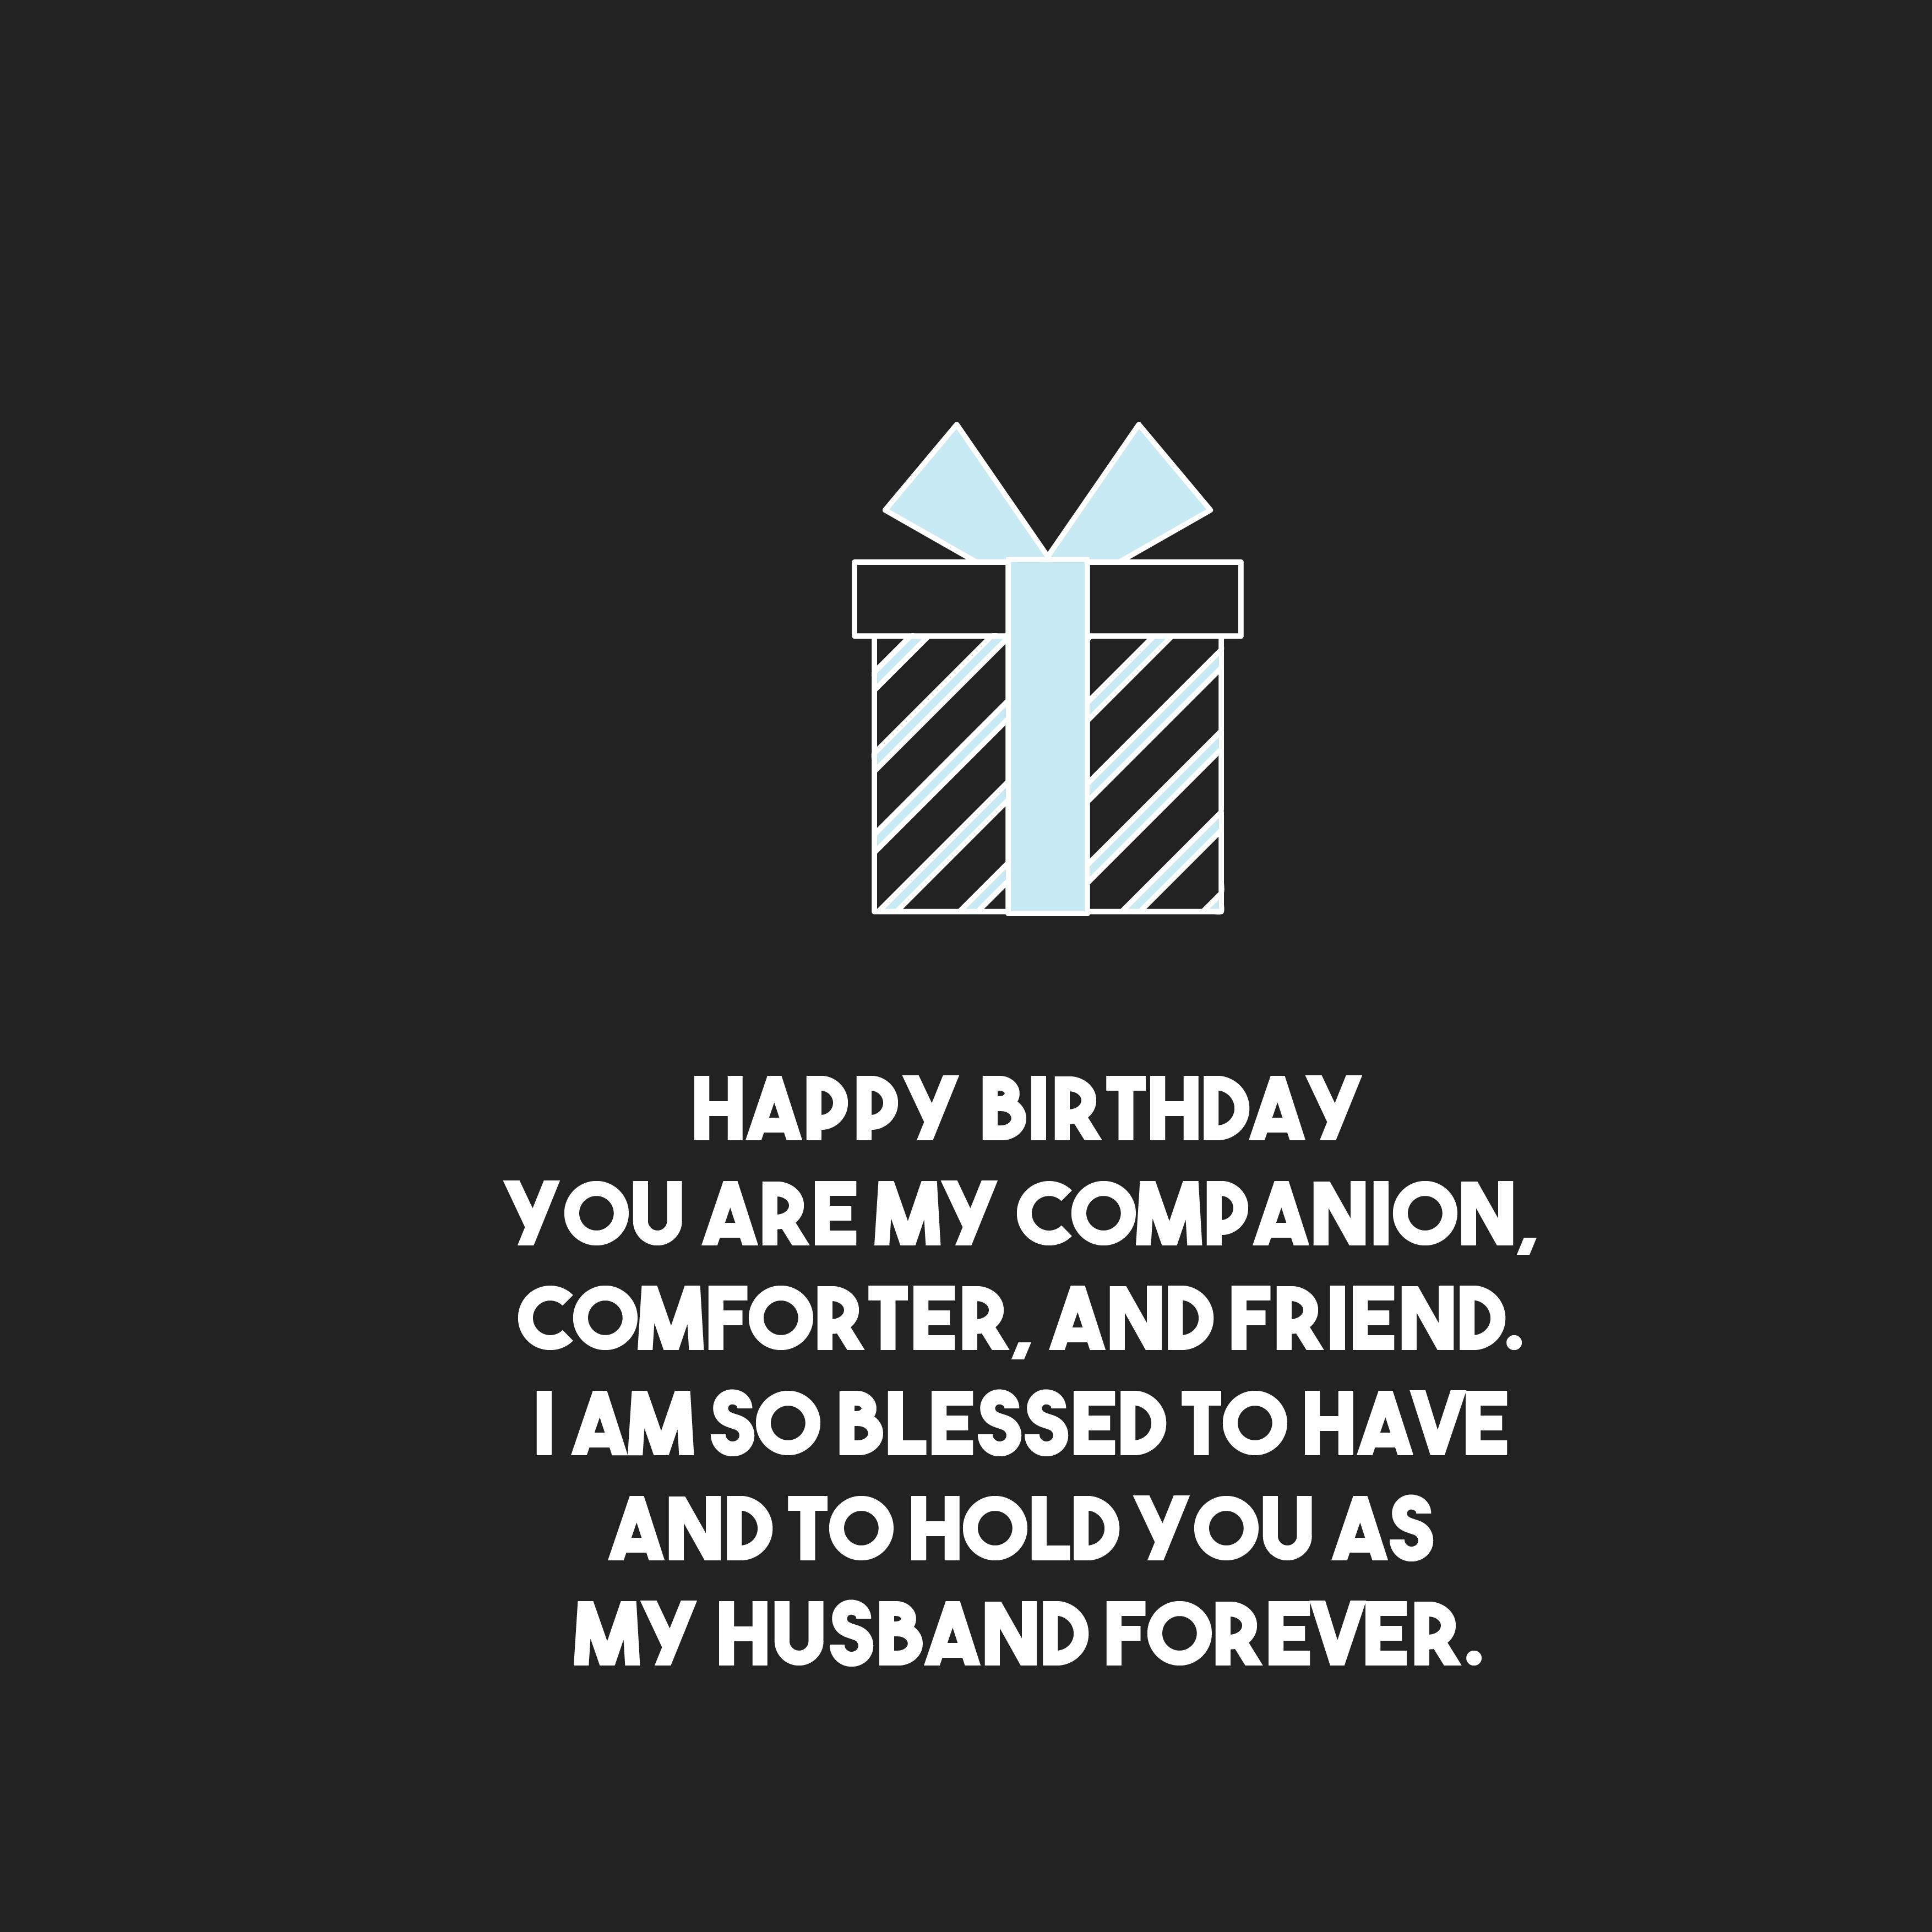 birthday-wishes-for-husband-06